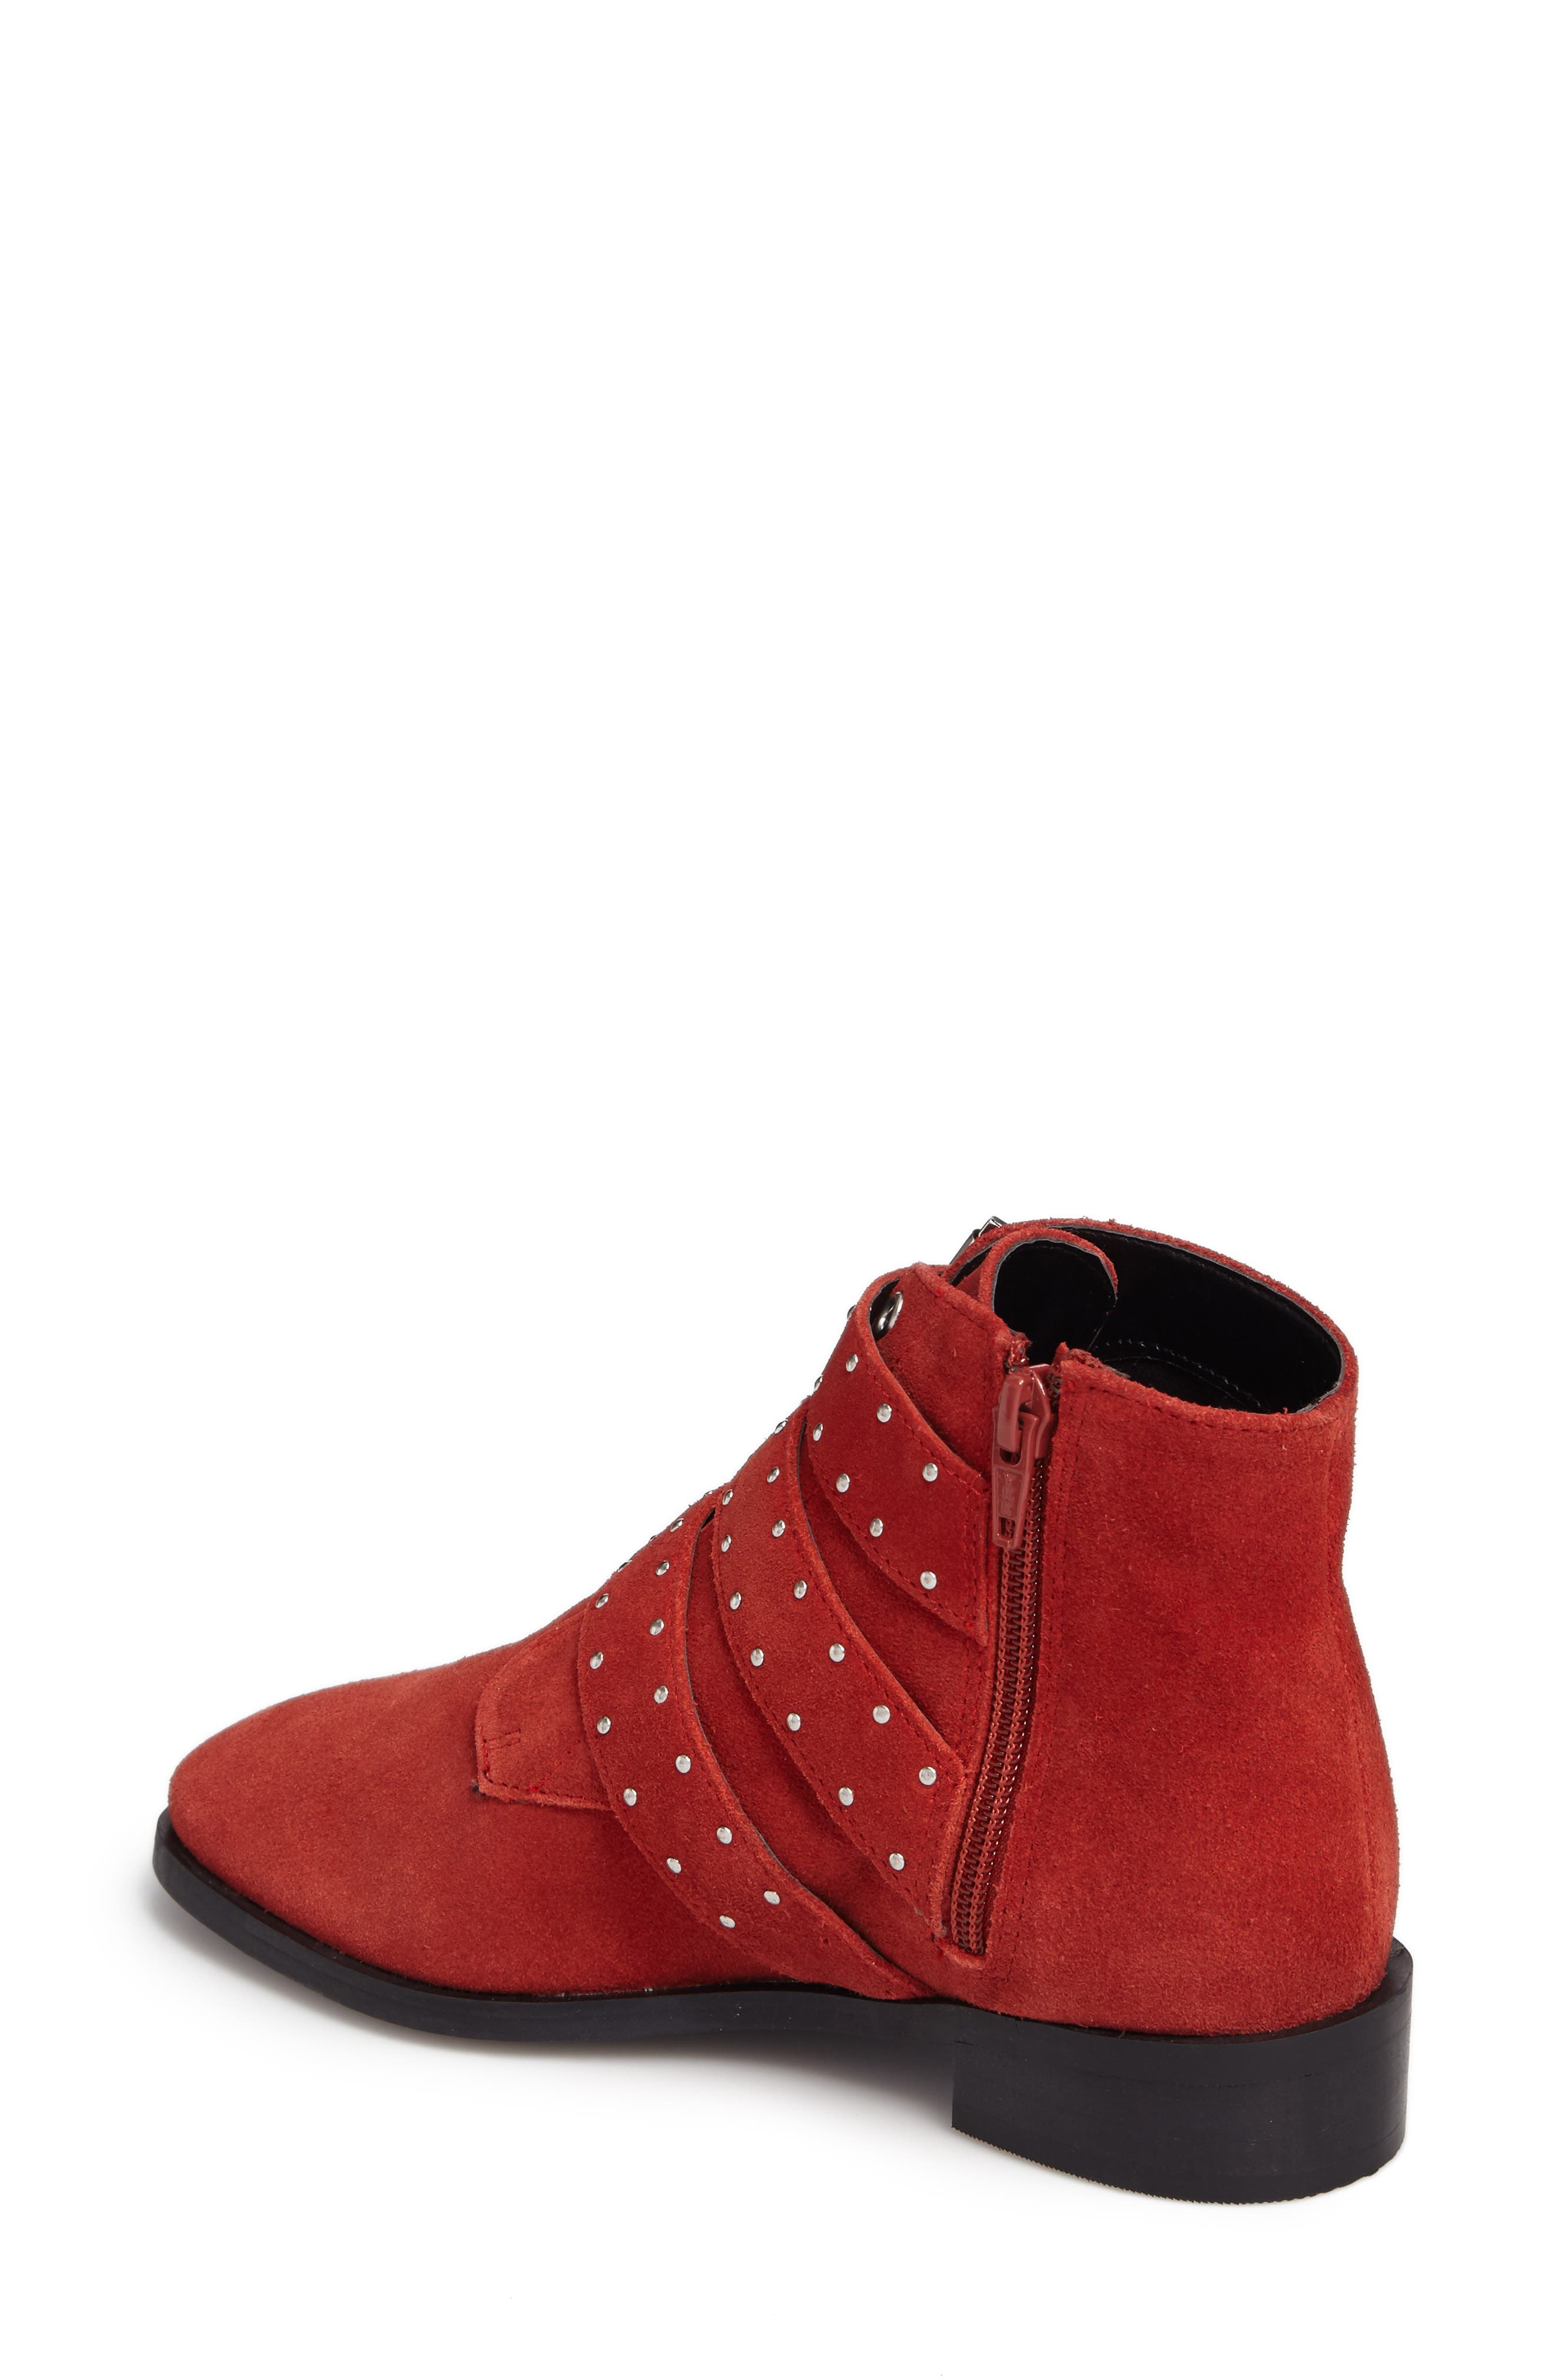 Krown Studded Bootie,                             Alternate thumbnail 2, color,                             Red